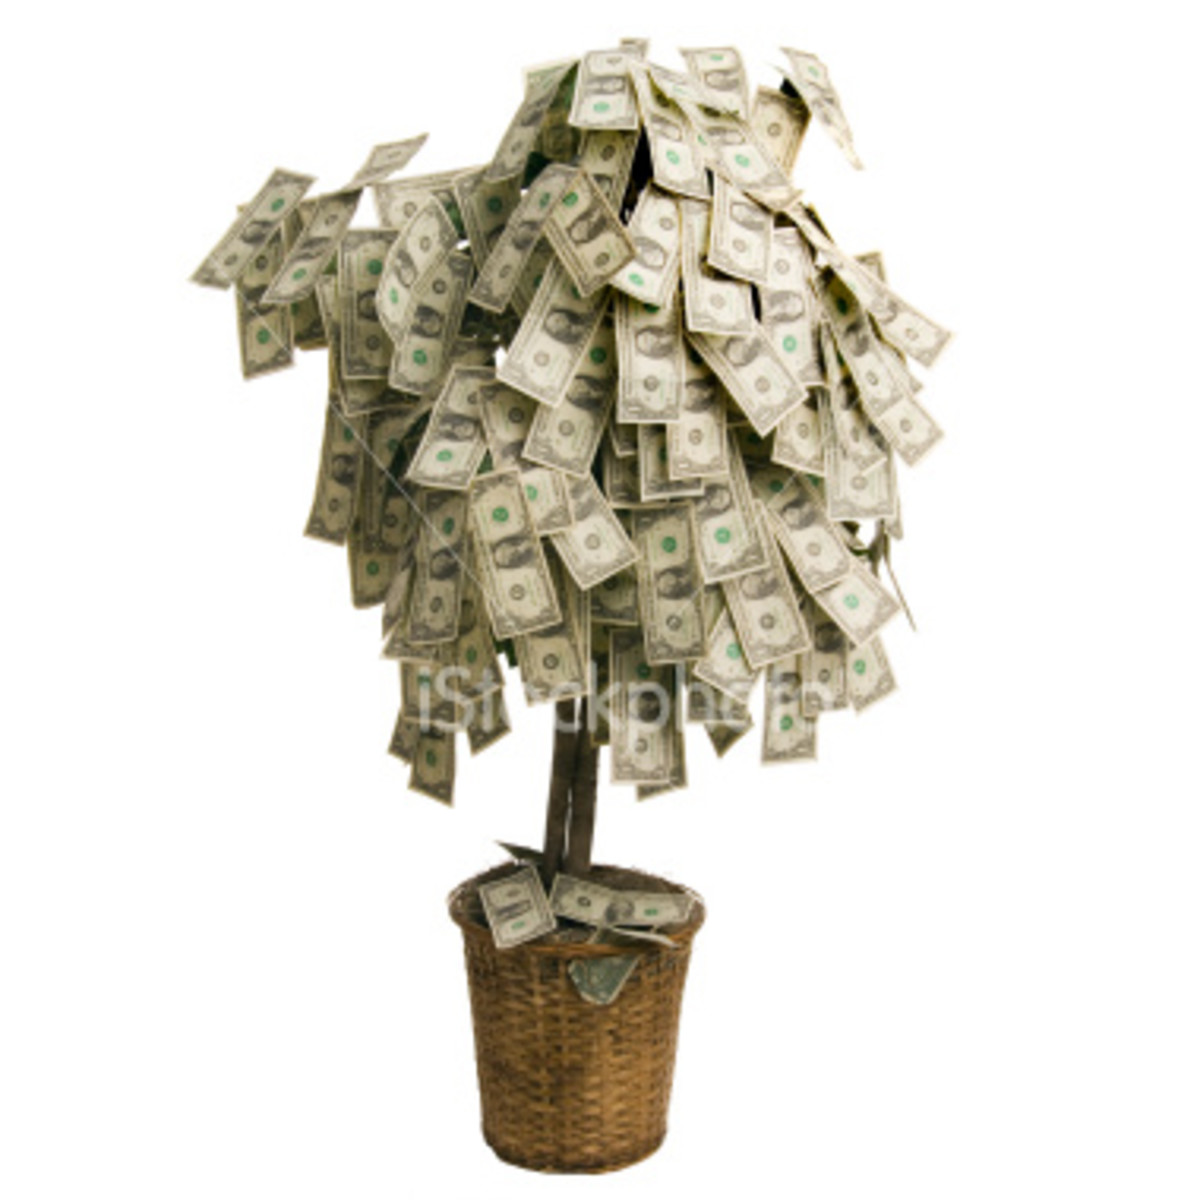 2012 prophecies = money trees. Trust me on this.